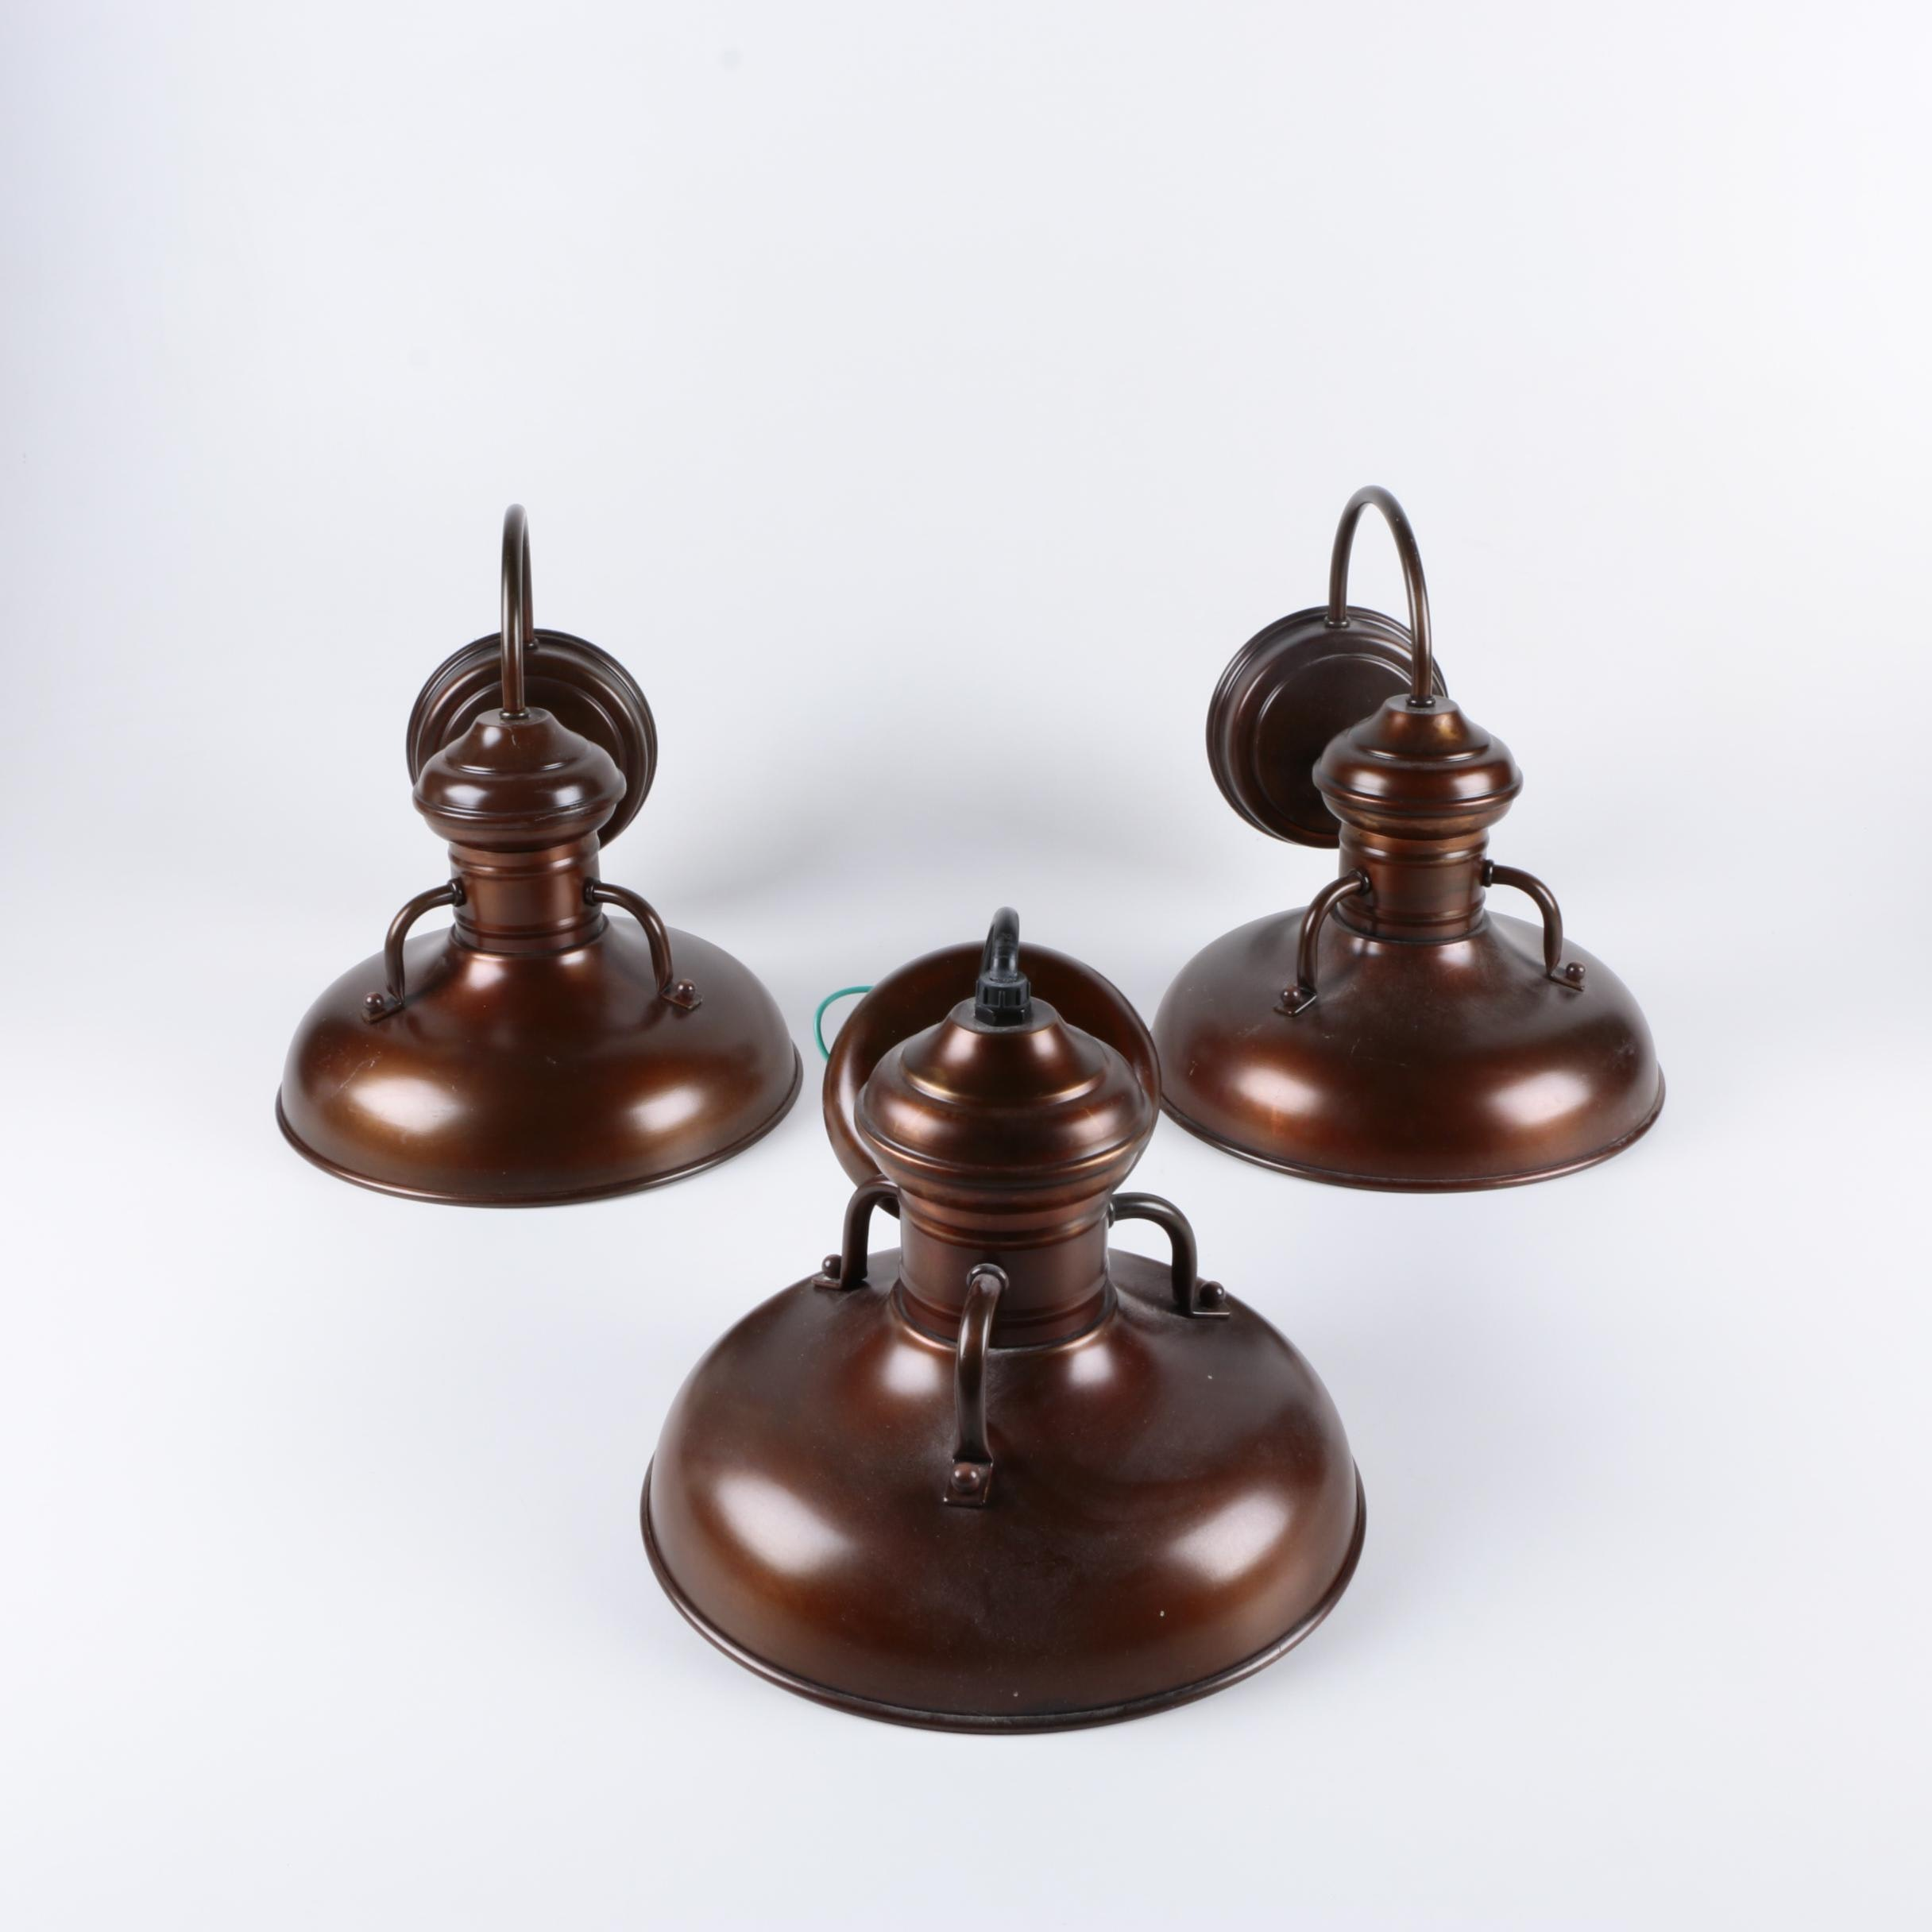 Bronze Tone Wall Sconces and Pendant Light